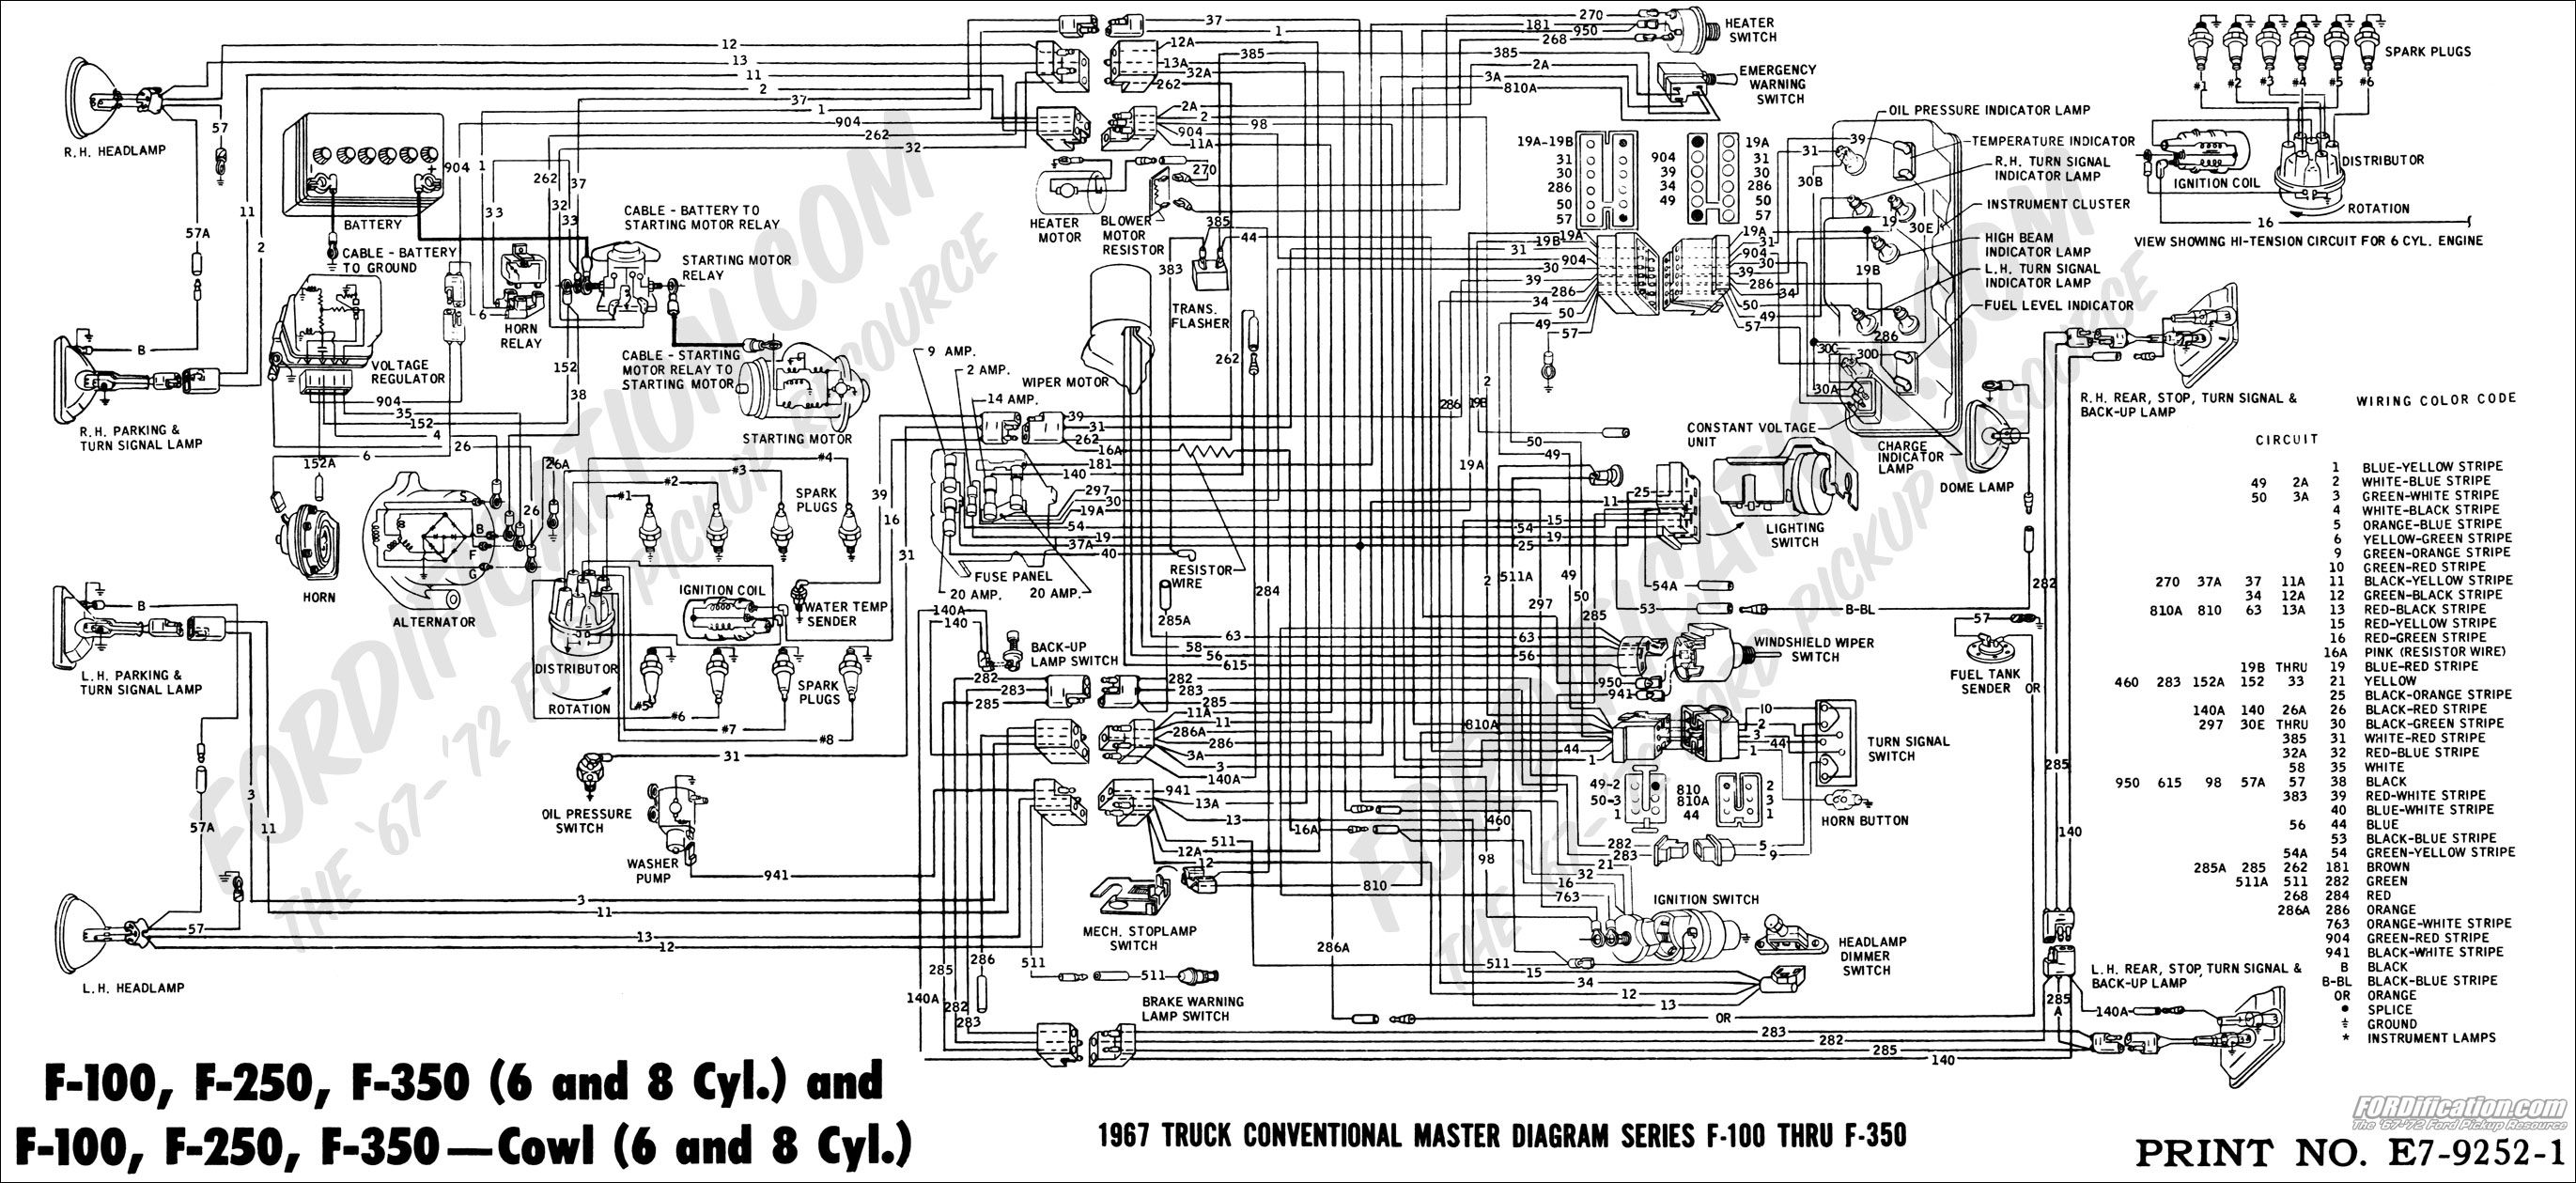 Picture Ford Wiring Diagram Ford Wiring Schematic Wiring Diagrams Ford Wiring Diagram Bookingritzcarlton Info Ford F150 F150 Ford Ranger